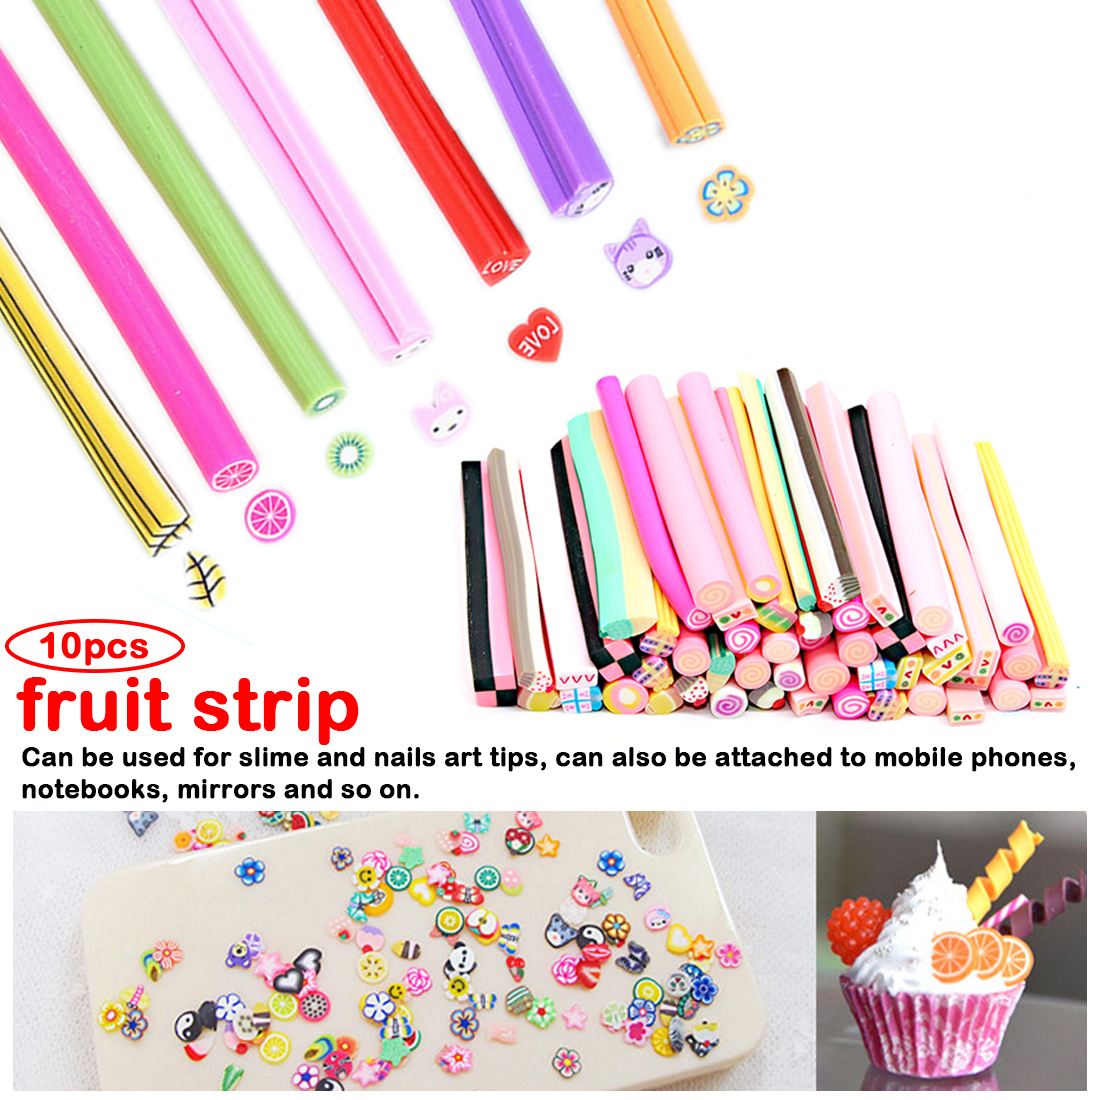 10pcs/lot  Fruit Slices For Slime Supplies/Nails Art Tips Clay Artificial Fruit Slices Sticks Slimes Toys DIY